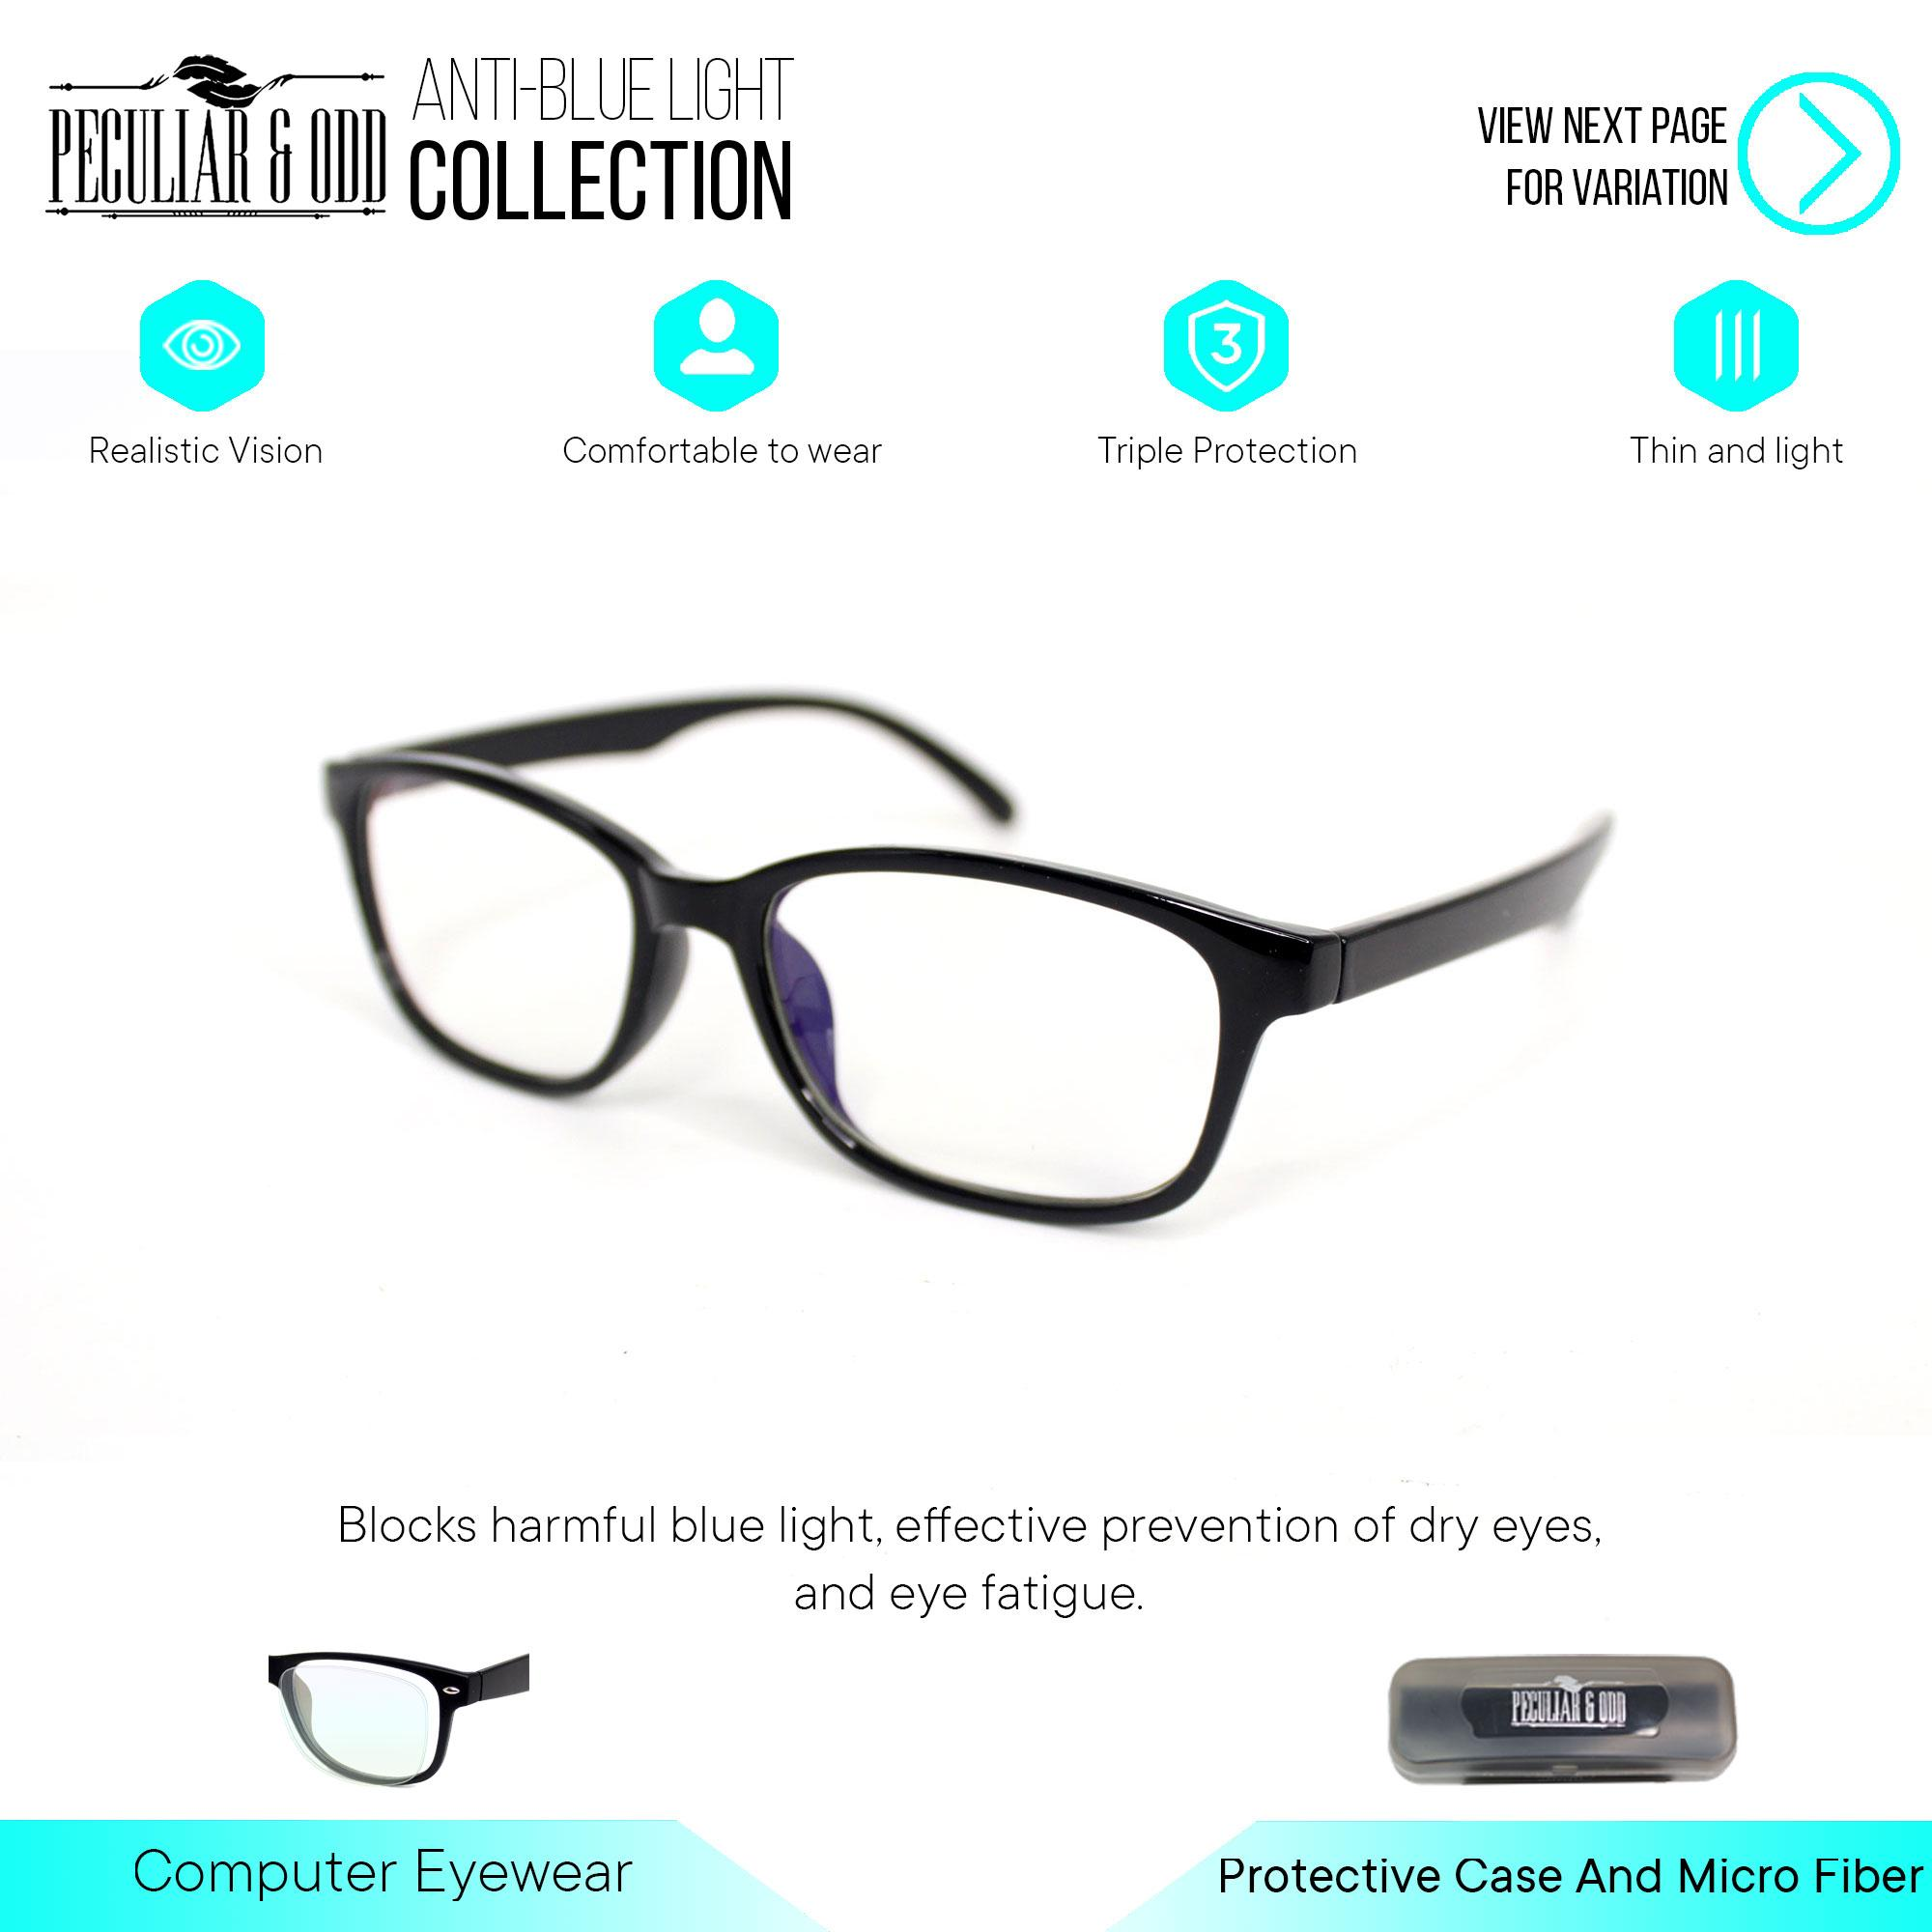 6d9413edda7b Peculiar Square 3028 CoalBlackClear Anti Radiation Computer Eyeglass Optical  Replaceable Eyewear Unisex new